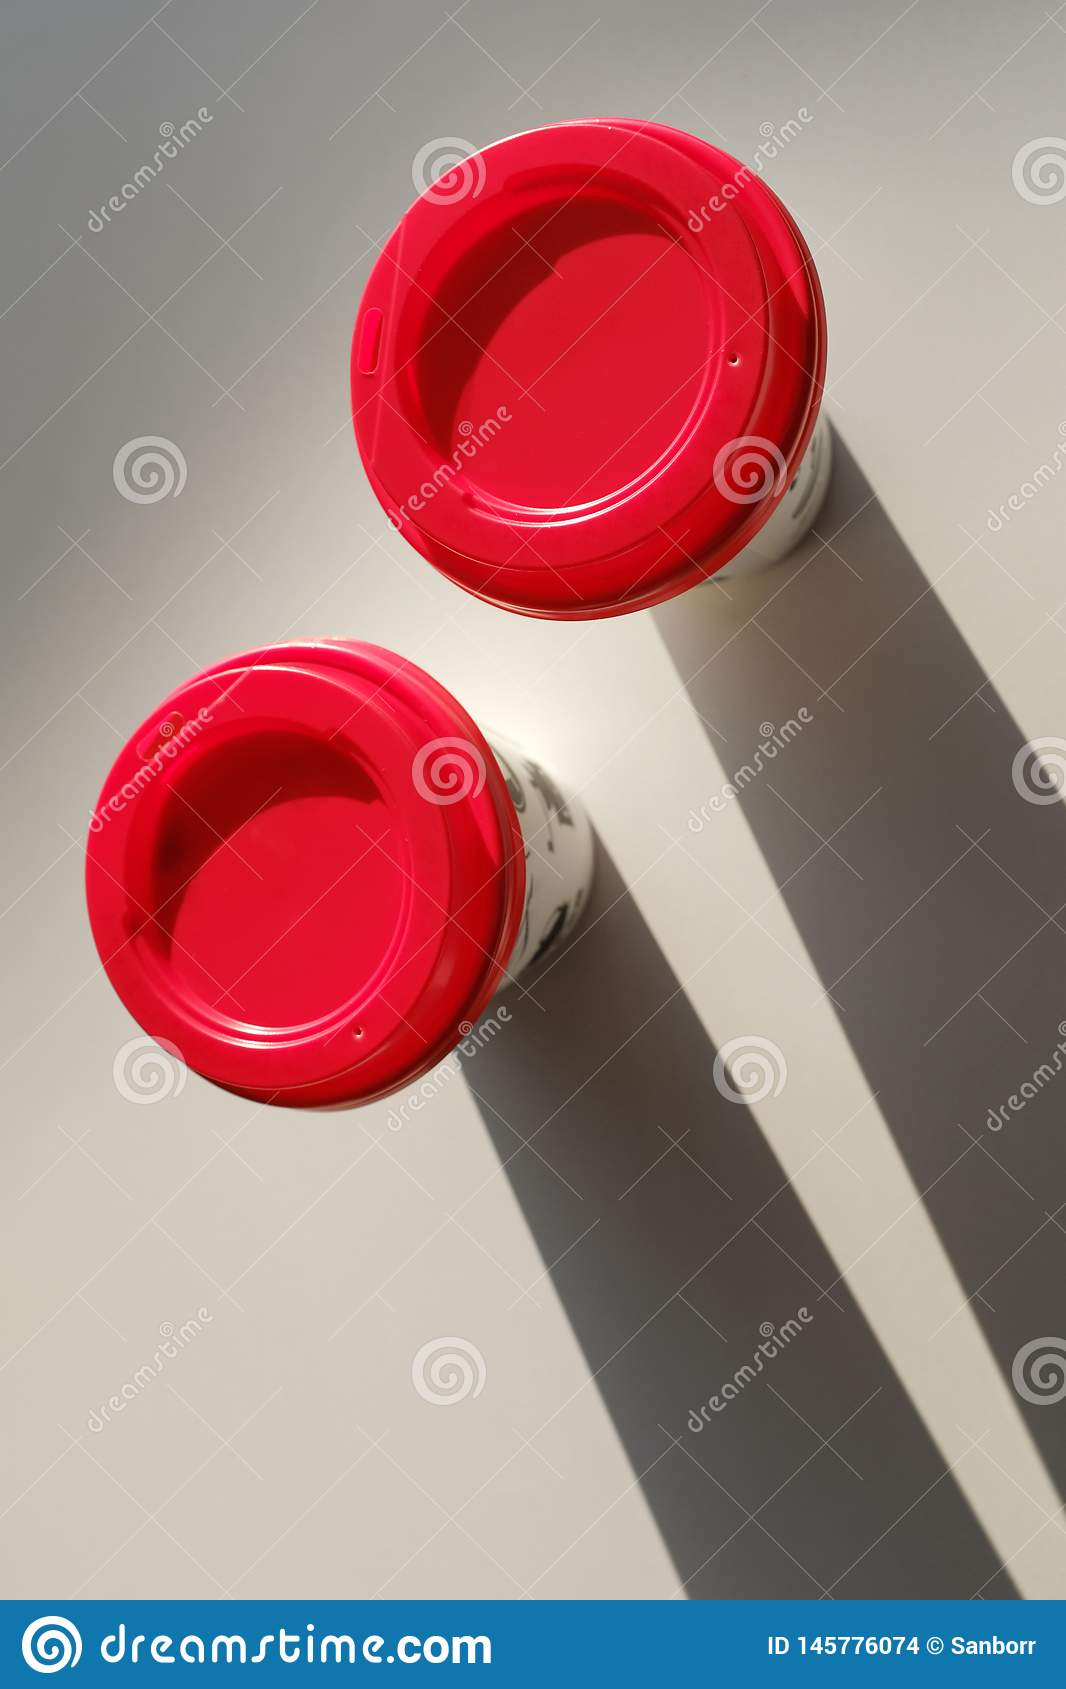 2 boxes of paper disposable cups with a red lid on the table in the cafe. Coffee to go. Morning. Coffee for Breakfast. 2 cups of